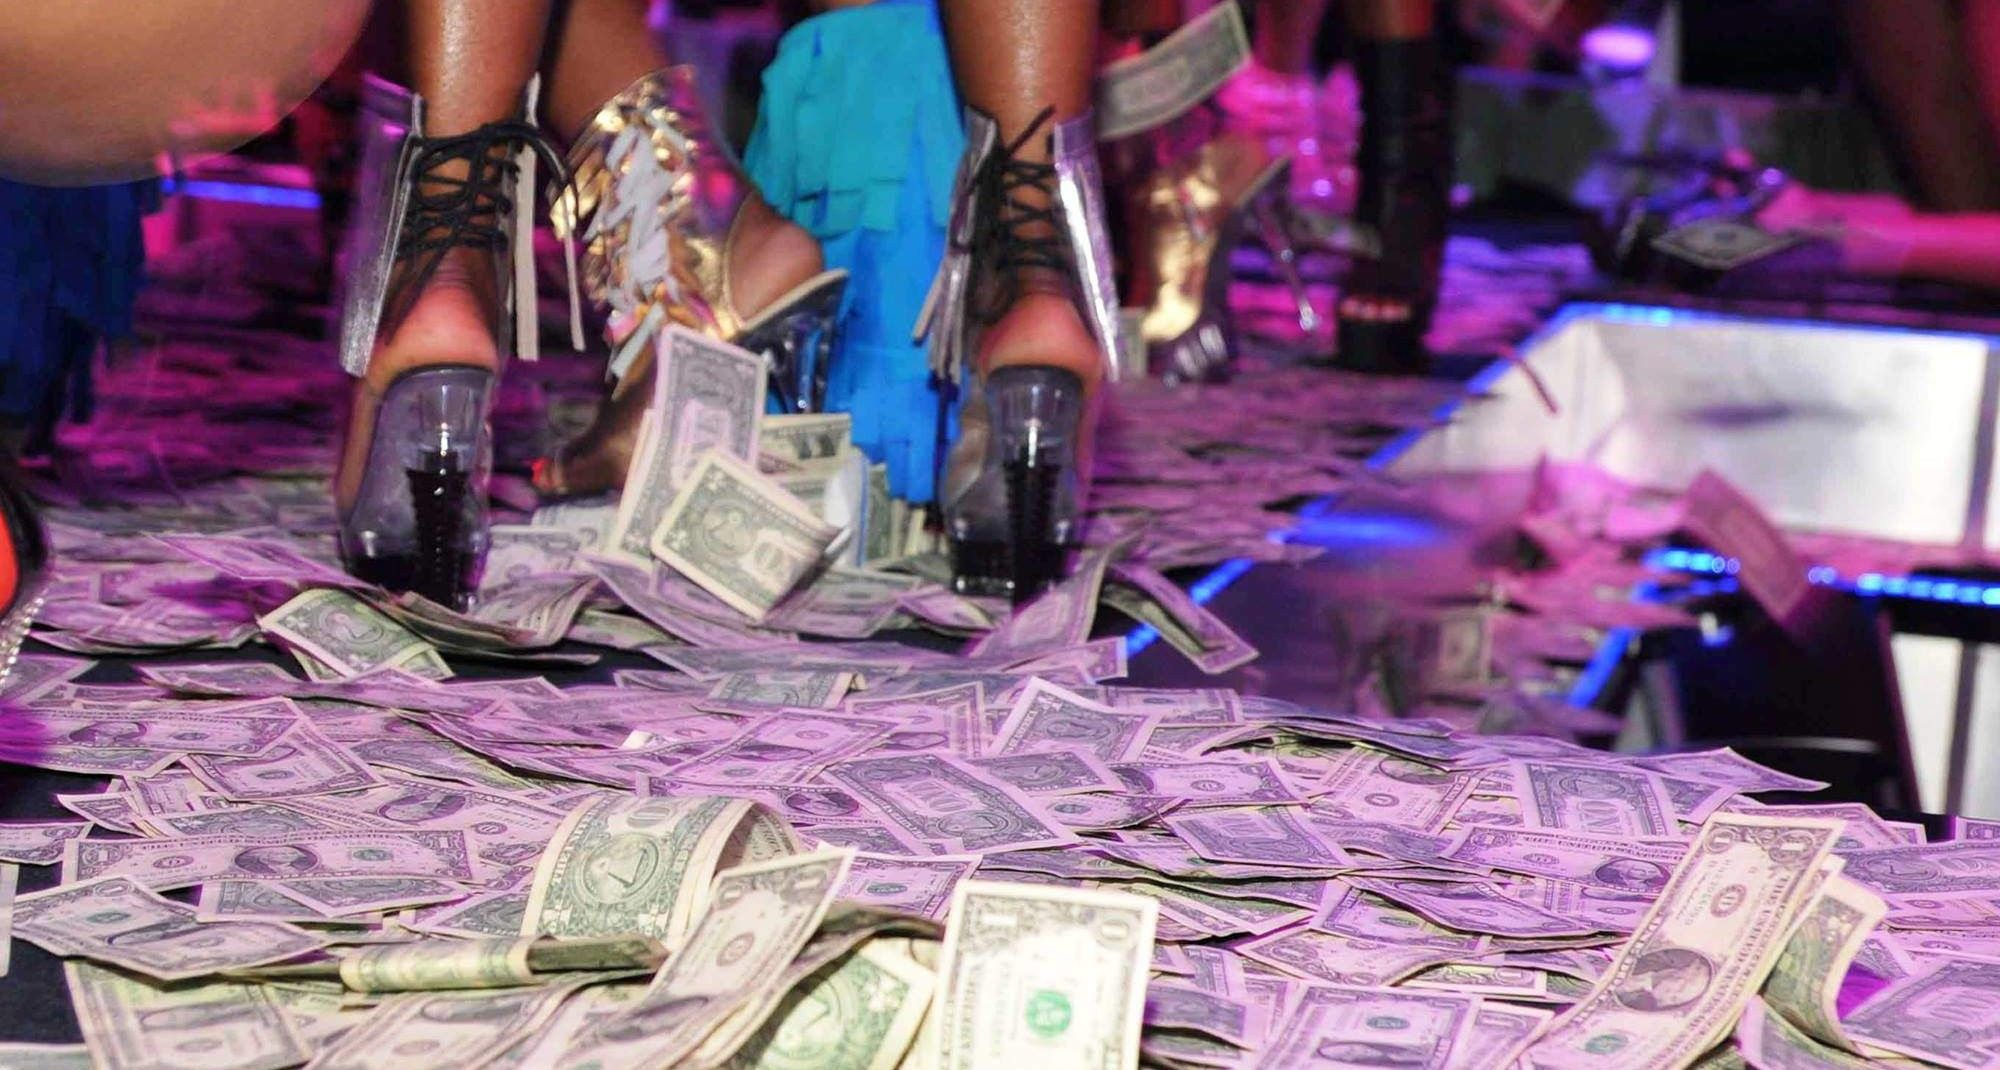 12 Strip Clubs That Should Be On Everyones Bucket List